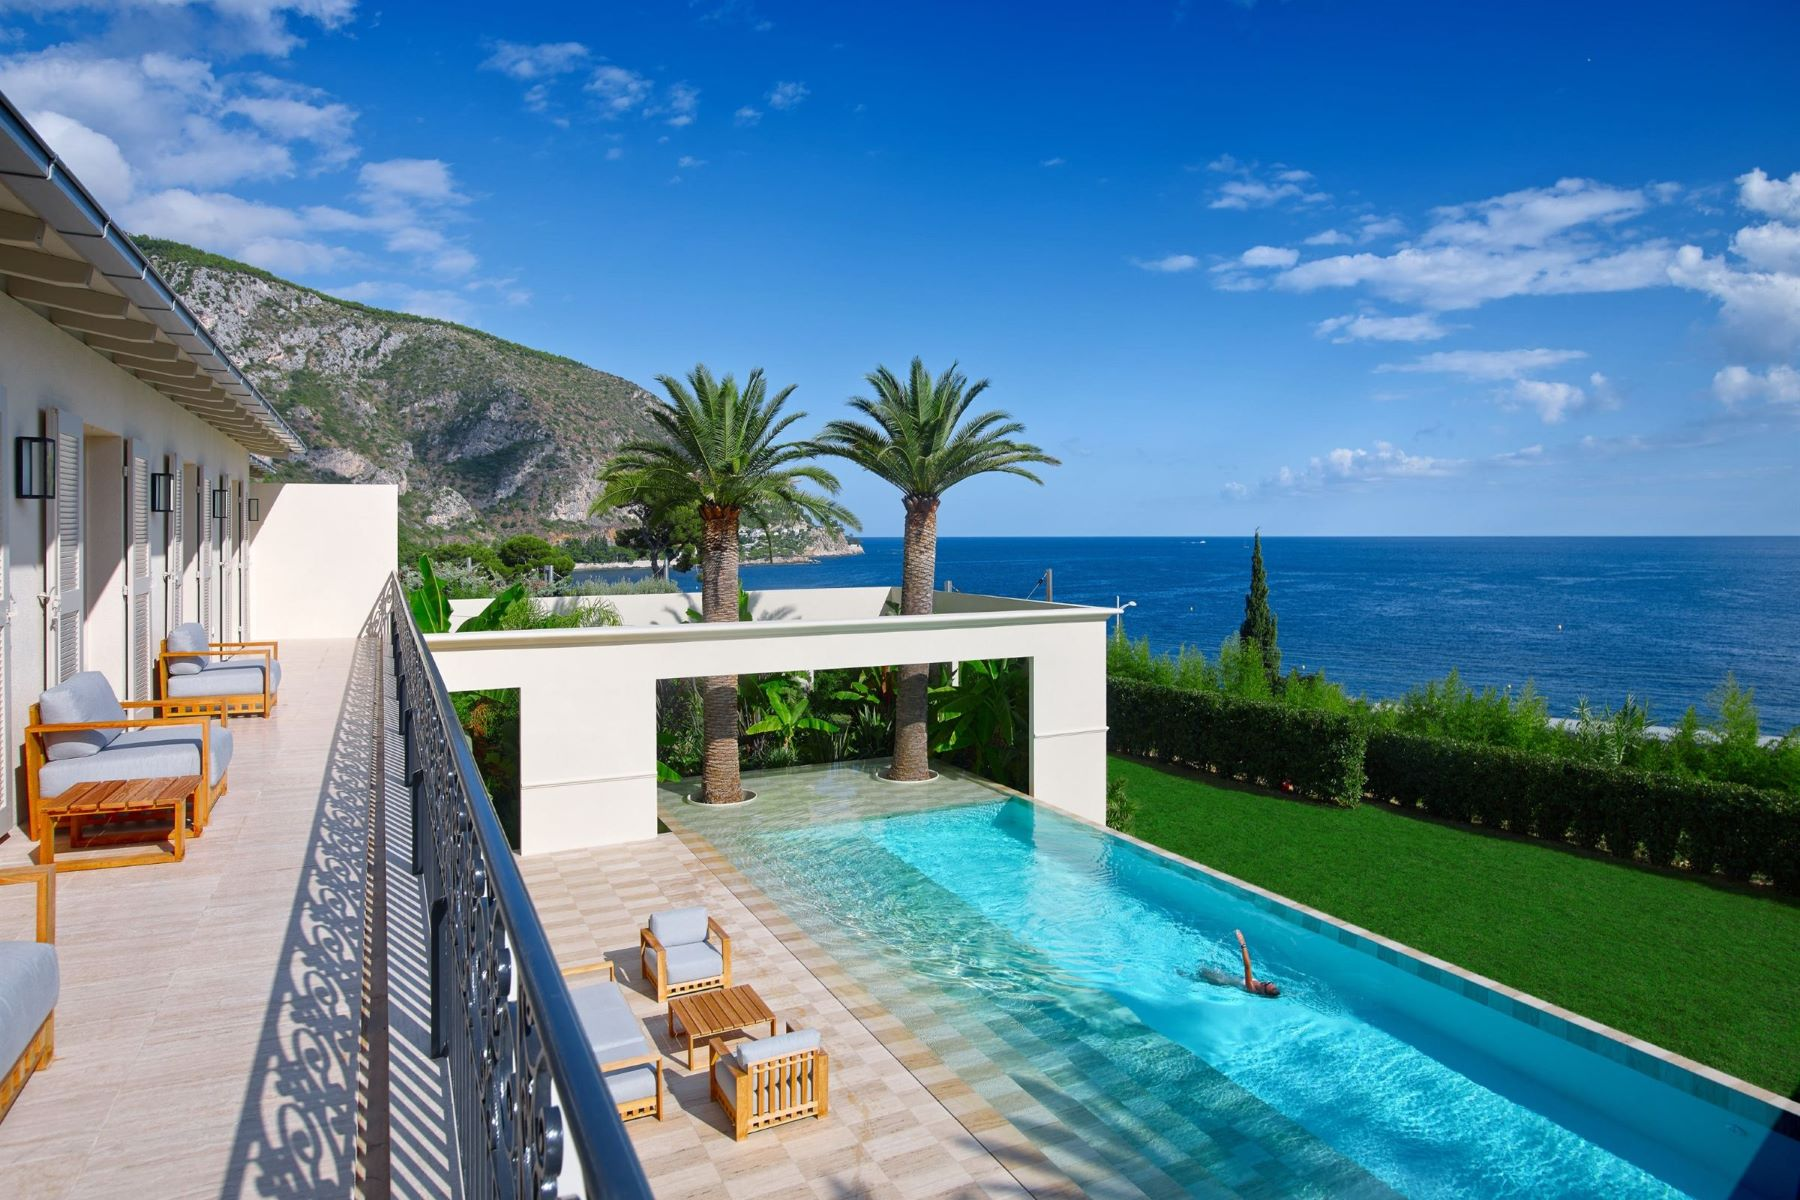 Single Family Home for Sale at Luxurious villa in Èze with tennis court, pool and stunning sea views Eze, Provence-Alpes-Cote D'Azur 06360 France